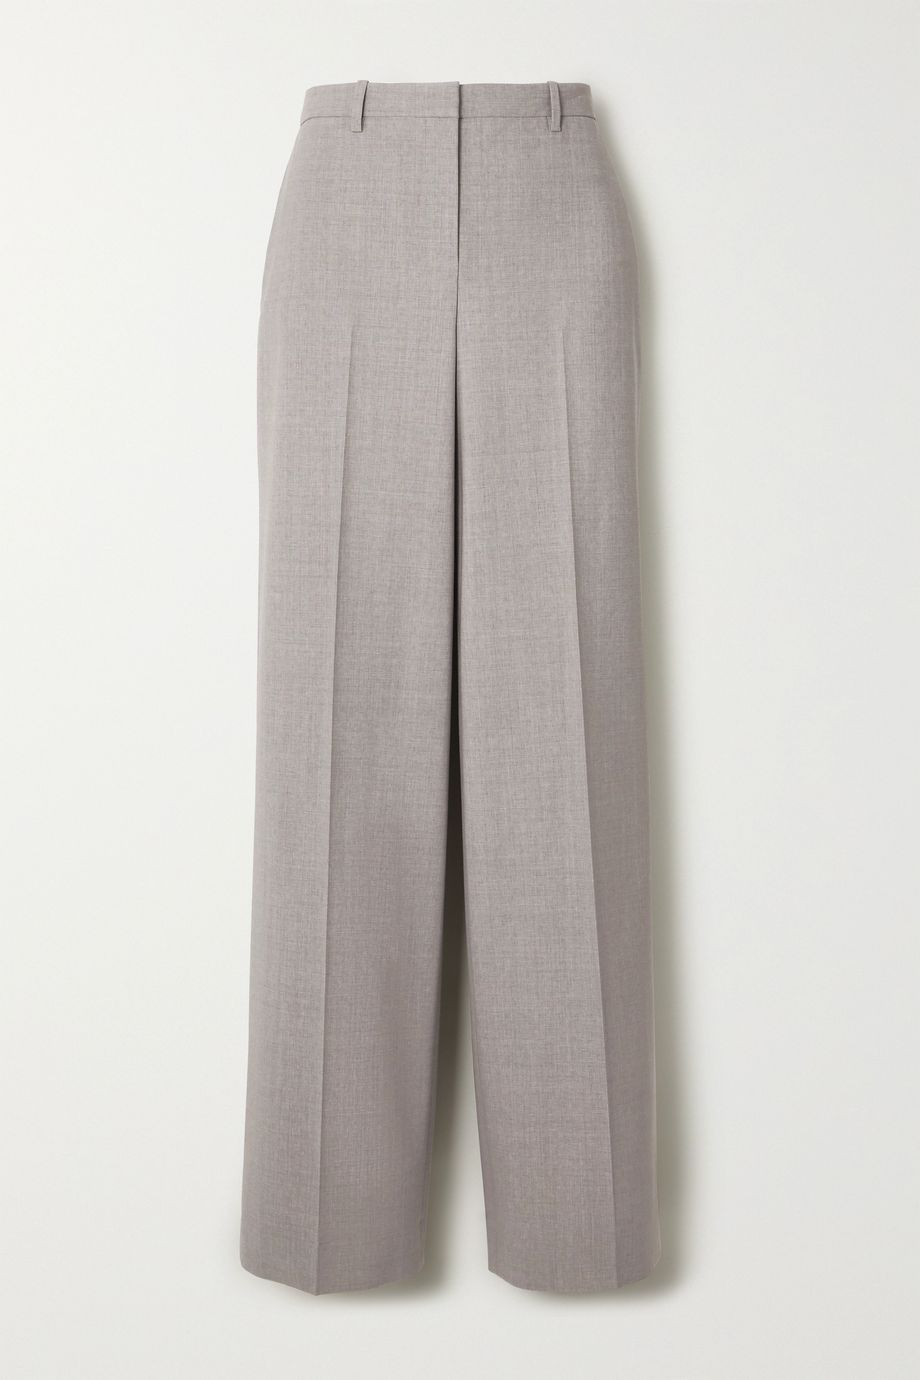 Theory Mélange stretch-wool straight-leg pants